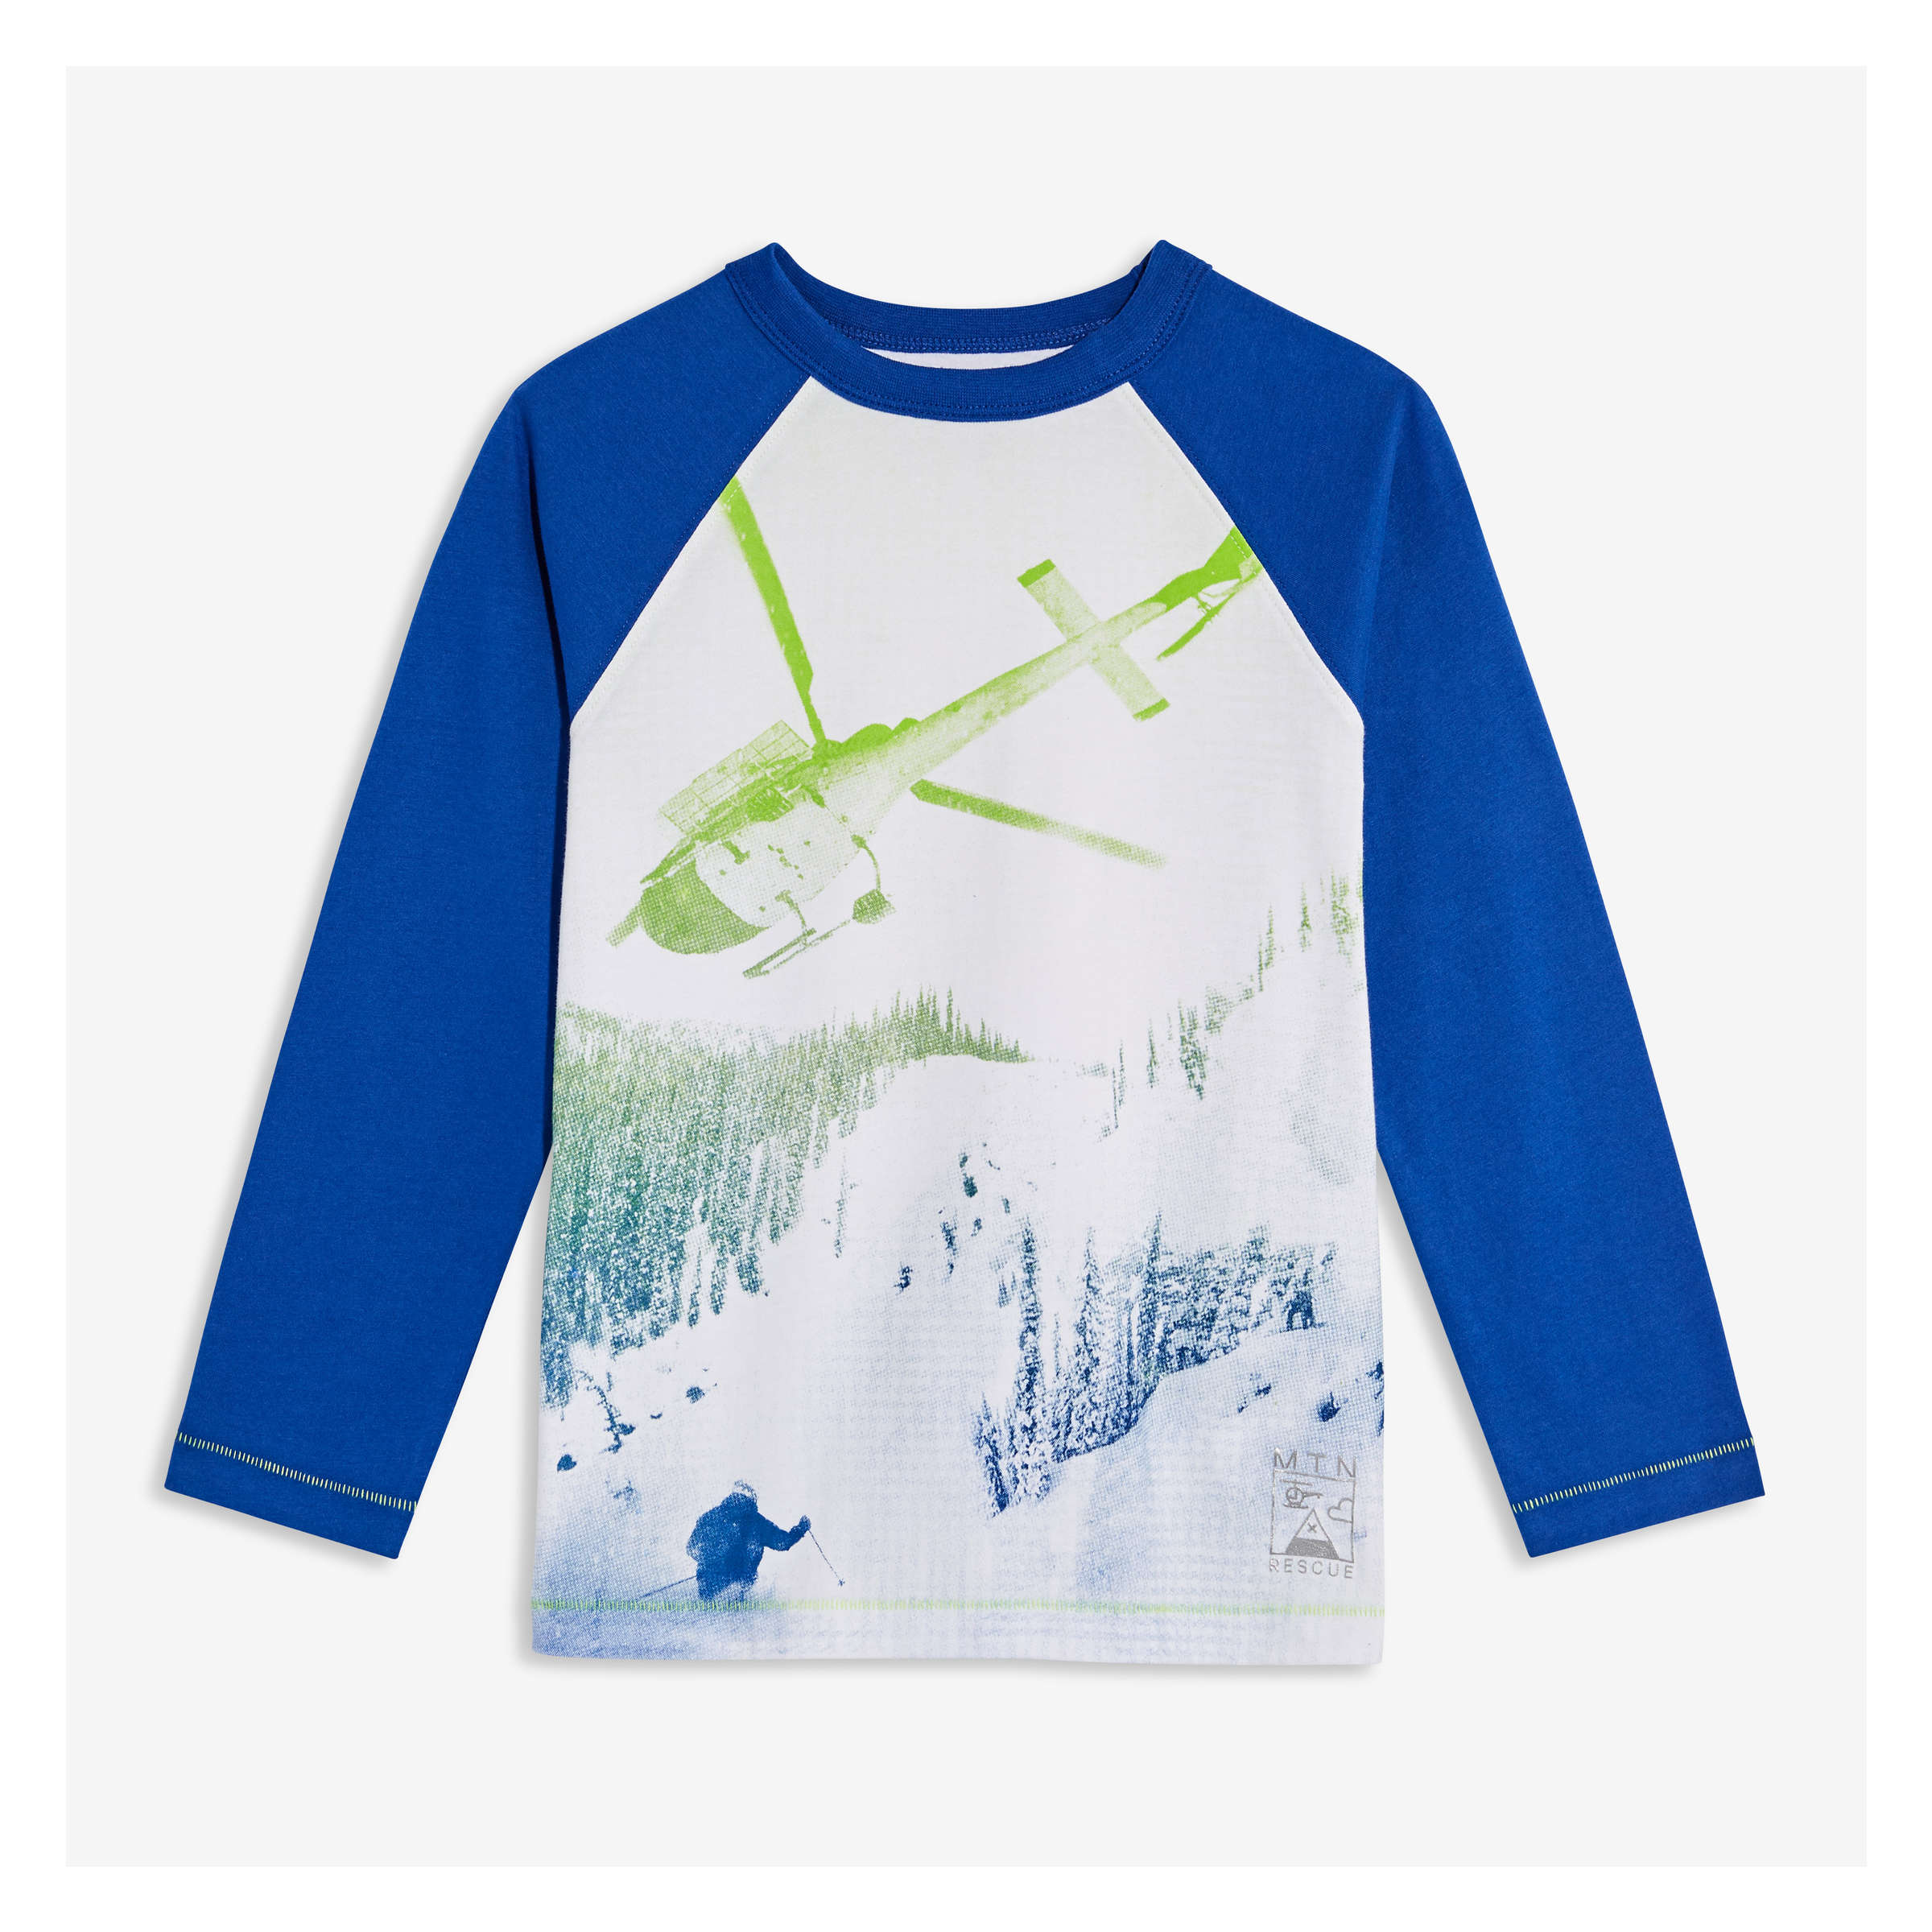 41fa732a3 Kid Boys' Graphic Raglan Tee in Royal Blue from Joe Fresh